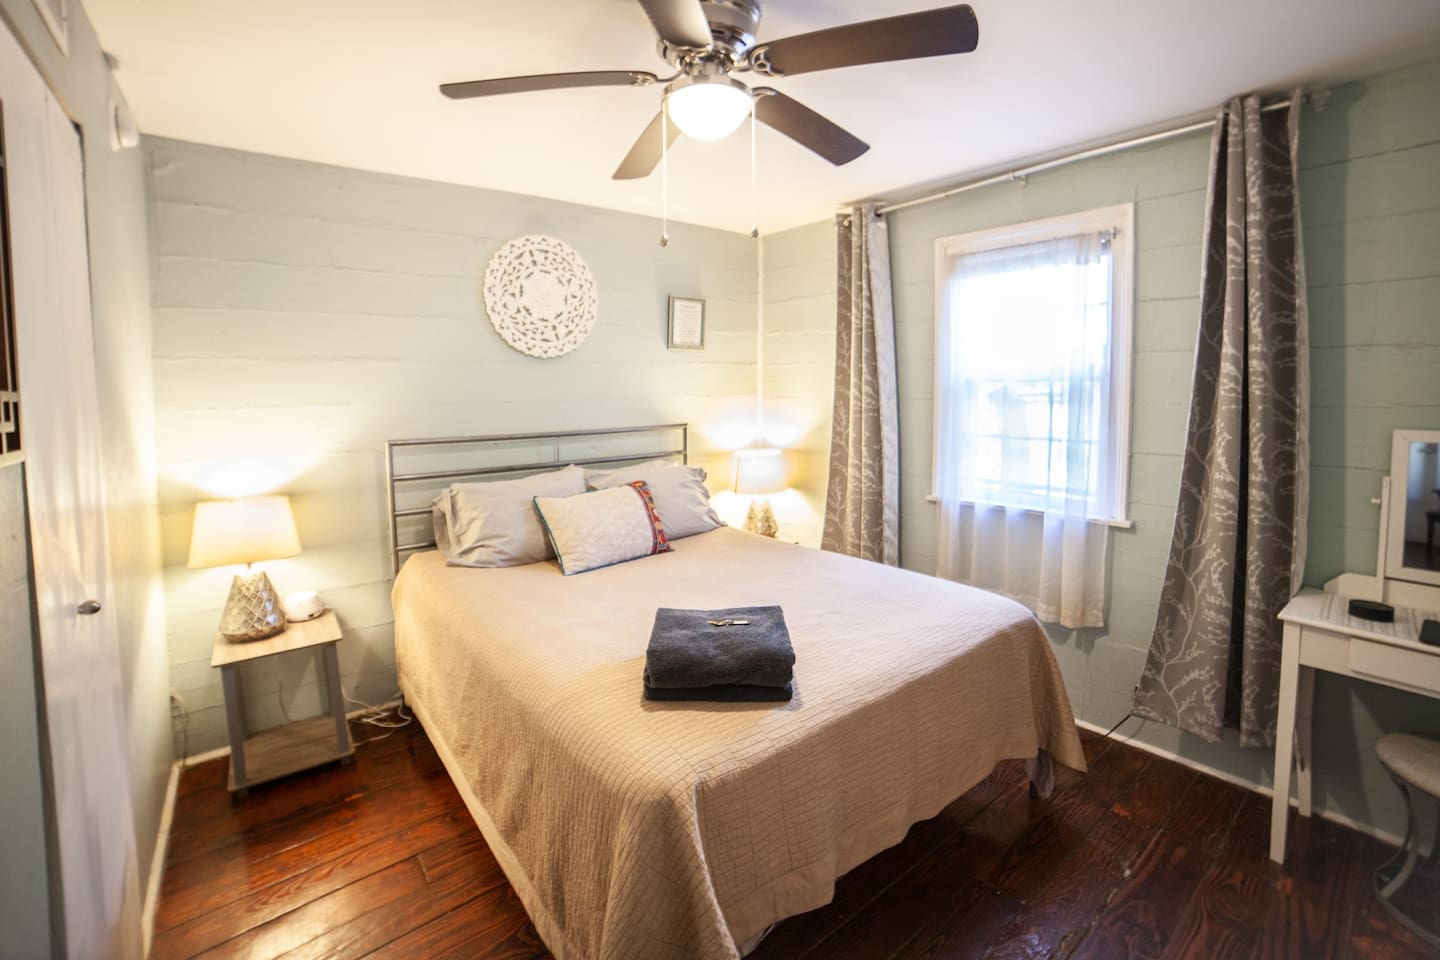 The Brazil Room has a queen bed with a desk, chair, closet and en suite bathroom.